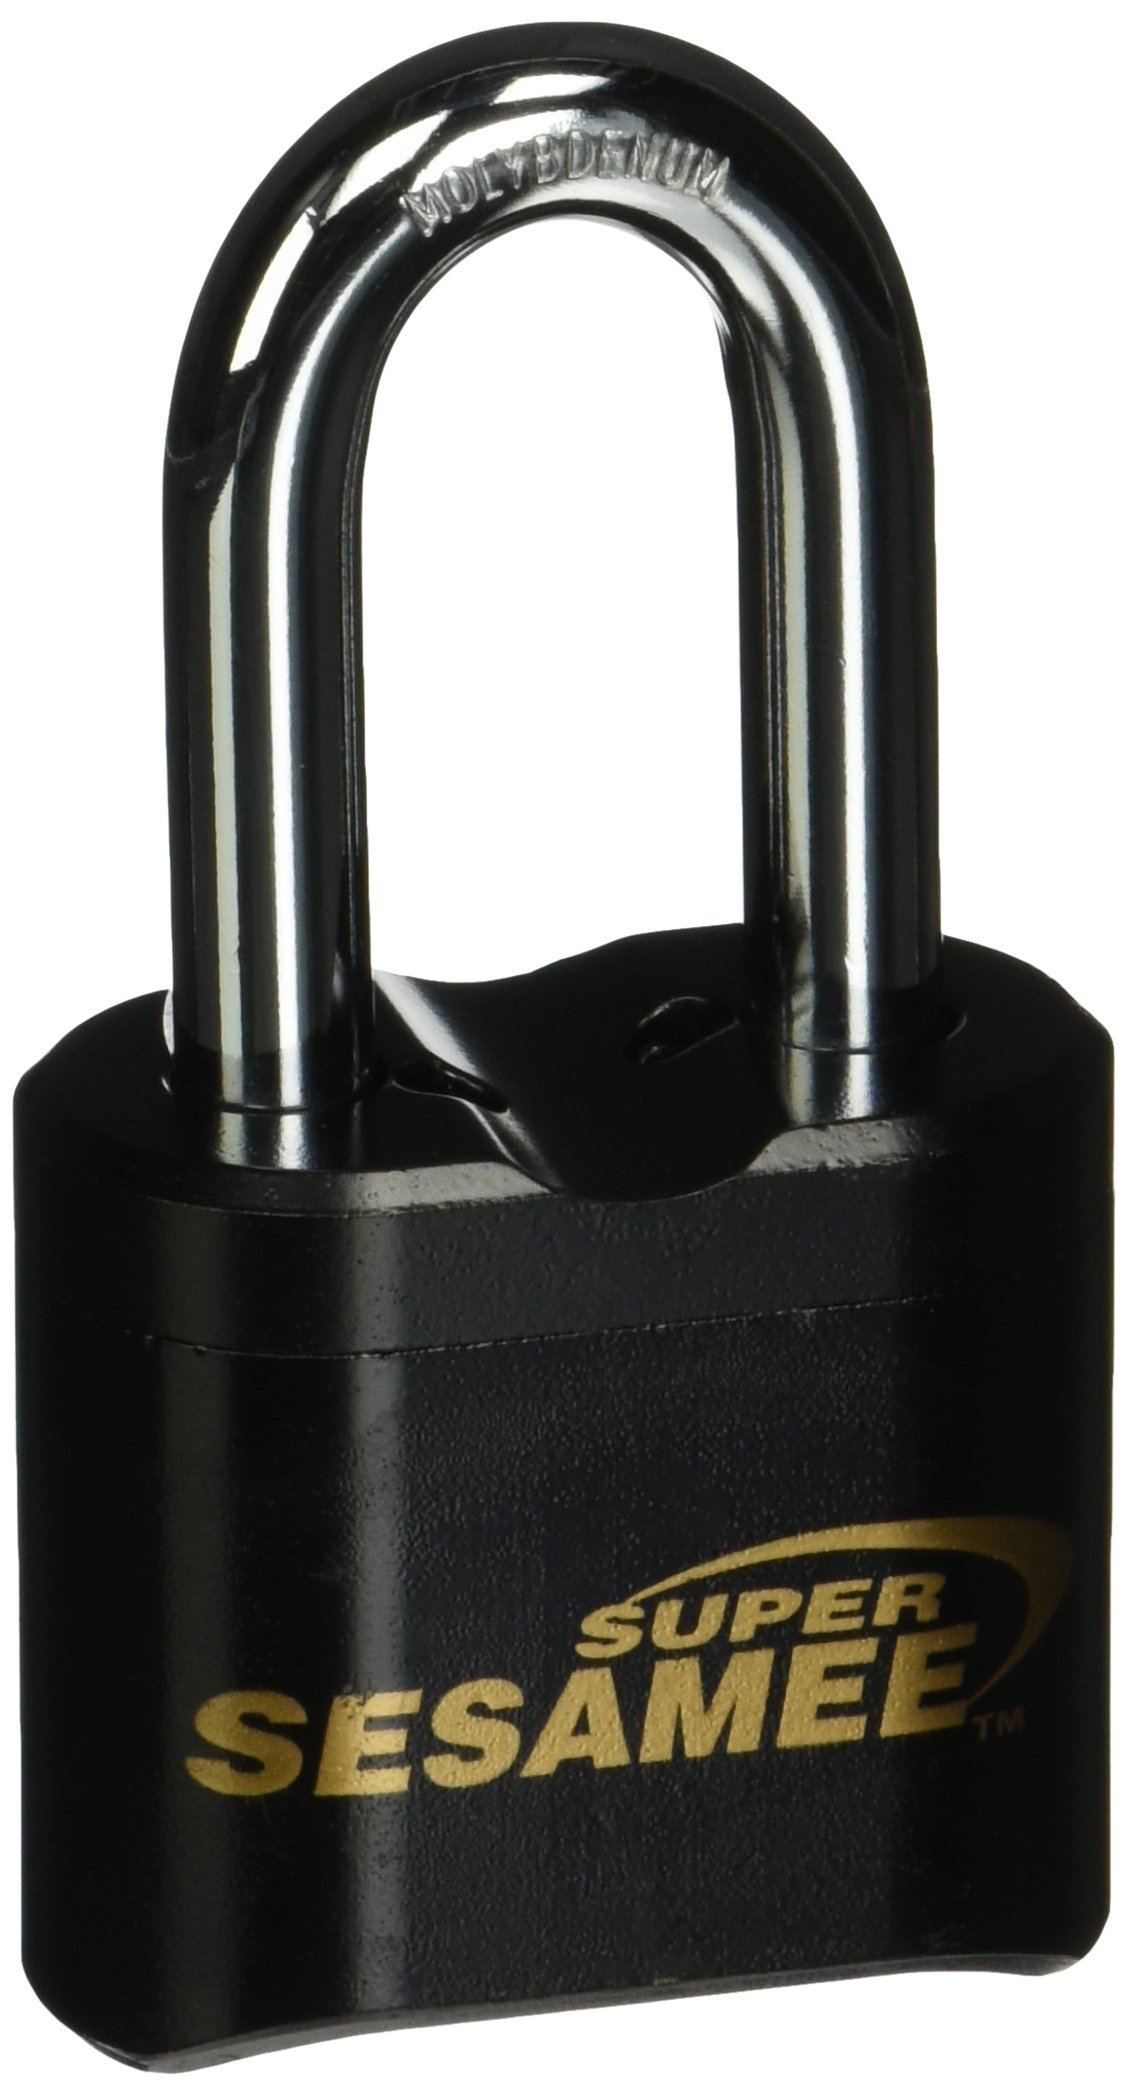 Sesamee K637 4 Dial Bottom Resettable Combination Brass Padlock with 2-Inch Shackle and 10,000 Potential Combinations by CCL Security Products